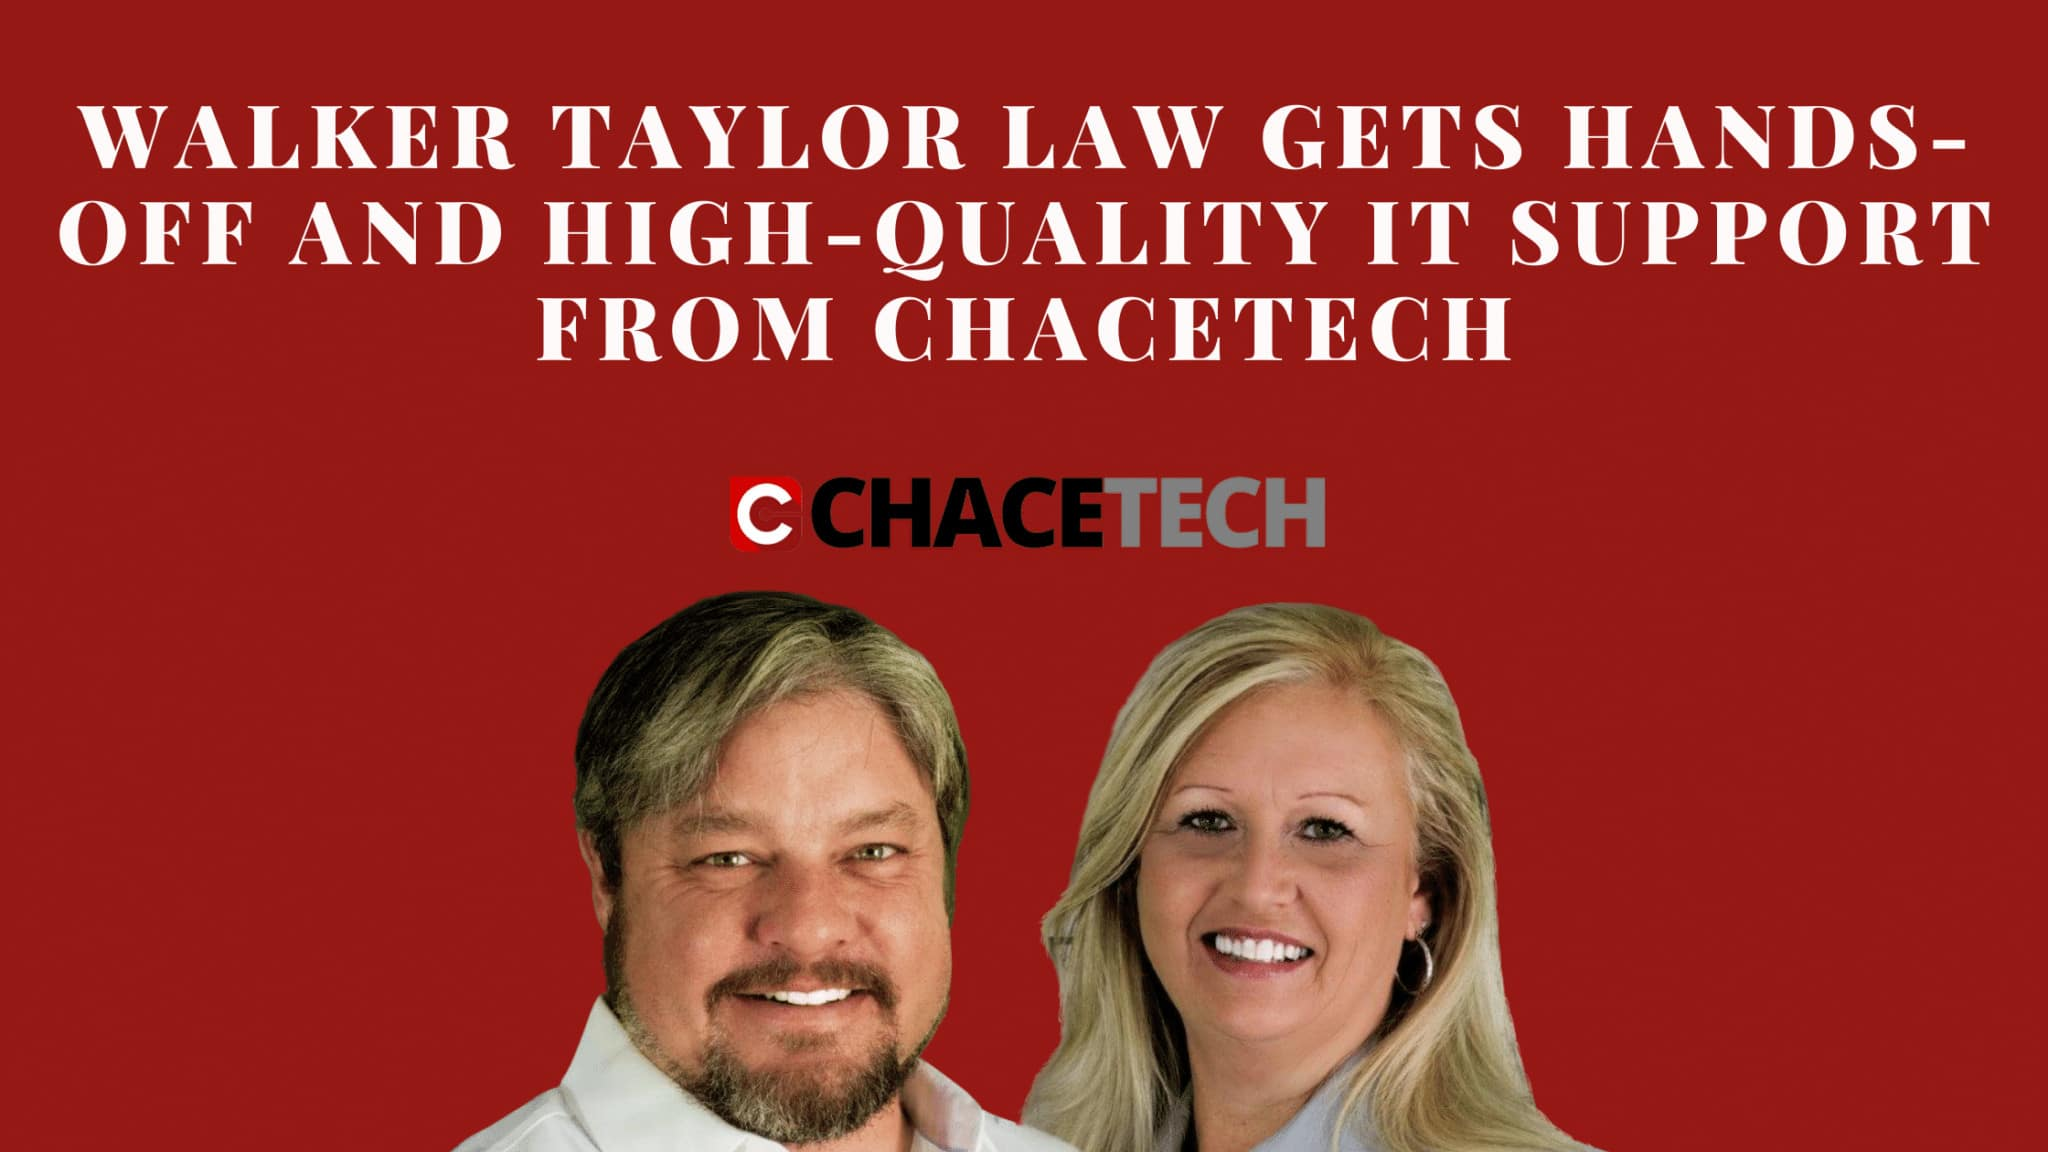 Walker Taylor Law Gets Hands-Off And High-Quality IT Support From ChaceTech